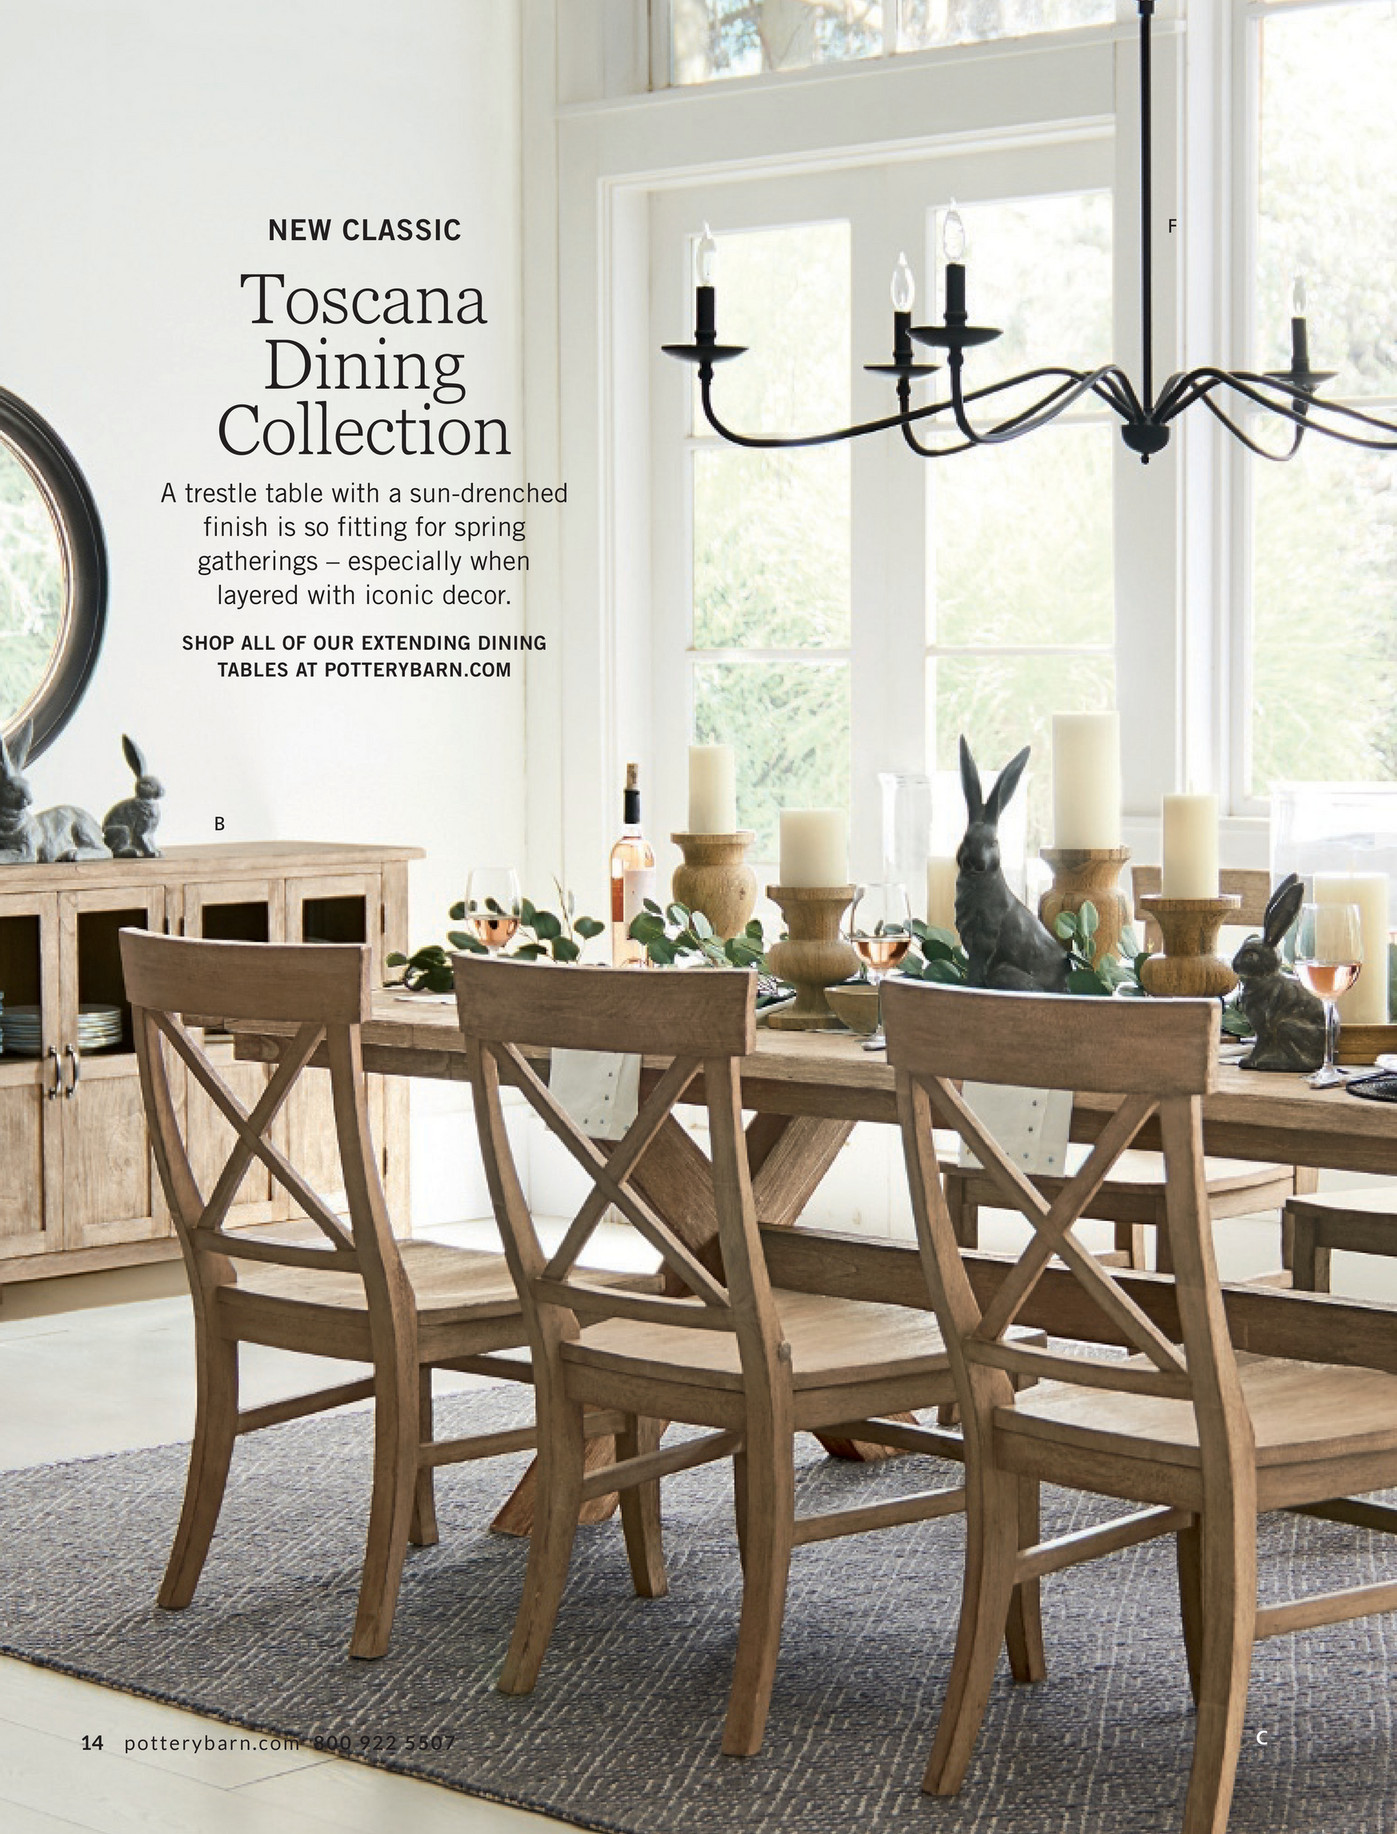 pottery barn spring d3 page 14 15 toscana dining table